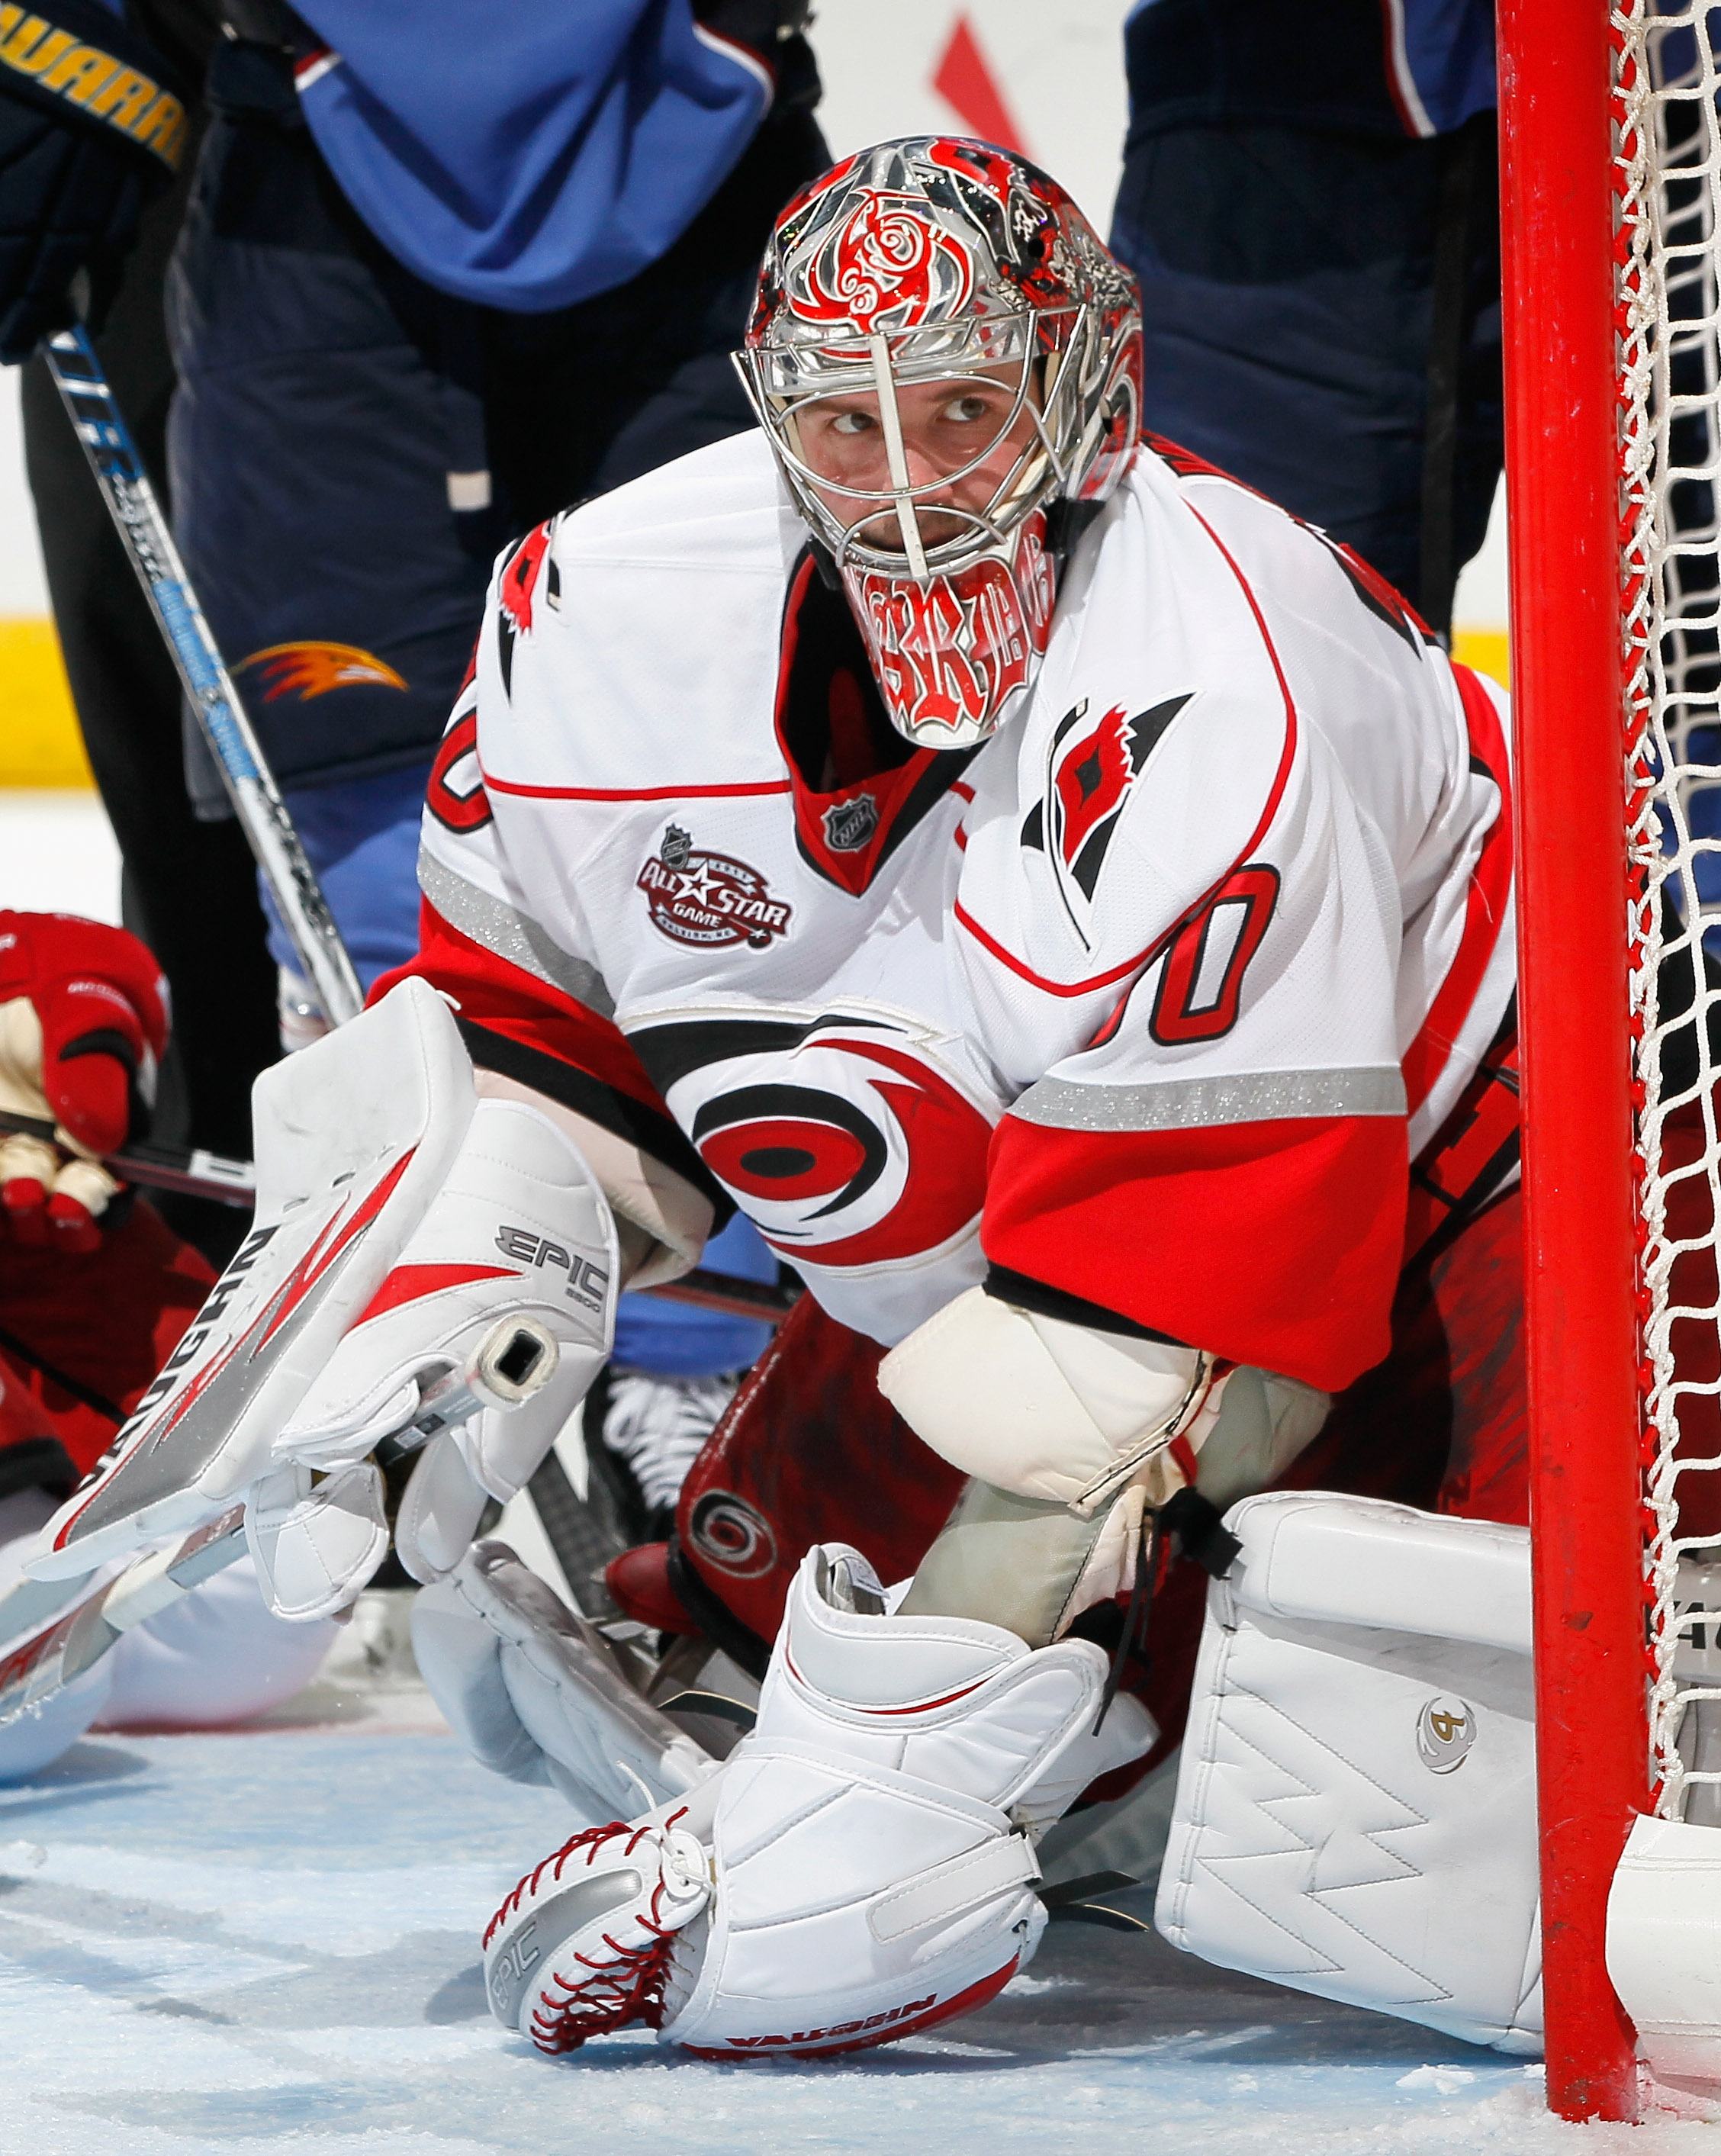 ATLANTA, GA - DECEMBER 16:  Goaltender Cam Ward #30 of the Carolina Hurricanes against the Atlanta Thrashers at Philips Arena on December 16, 2010 in Atlanta, Georgia.  (Photo by Kevin C. Cox/Getty Images)